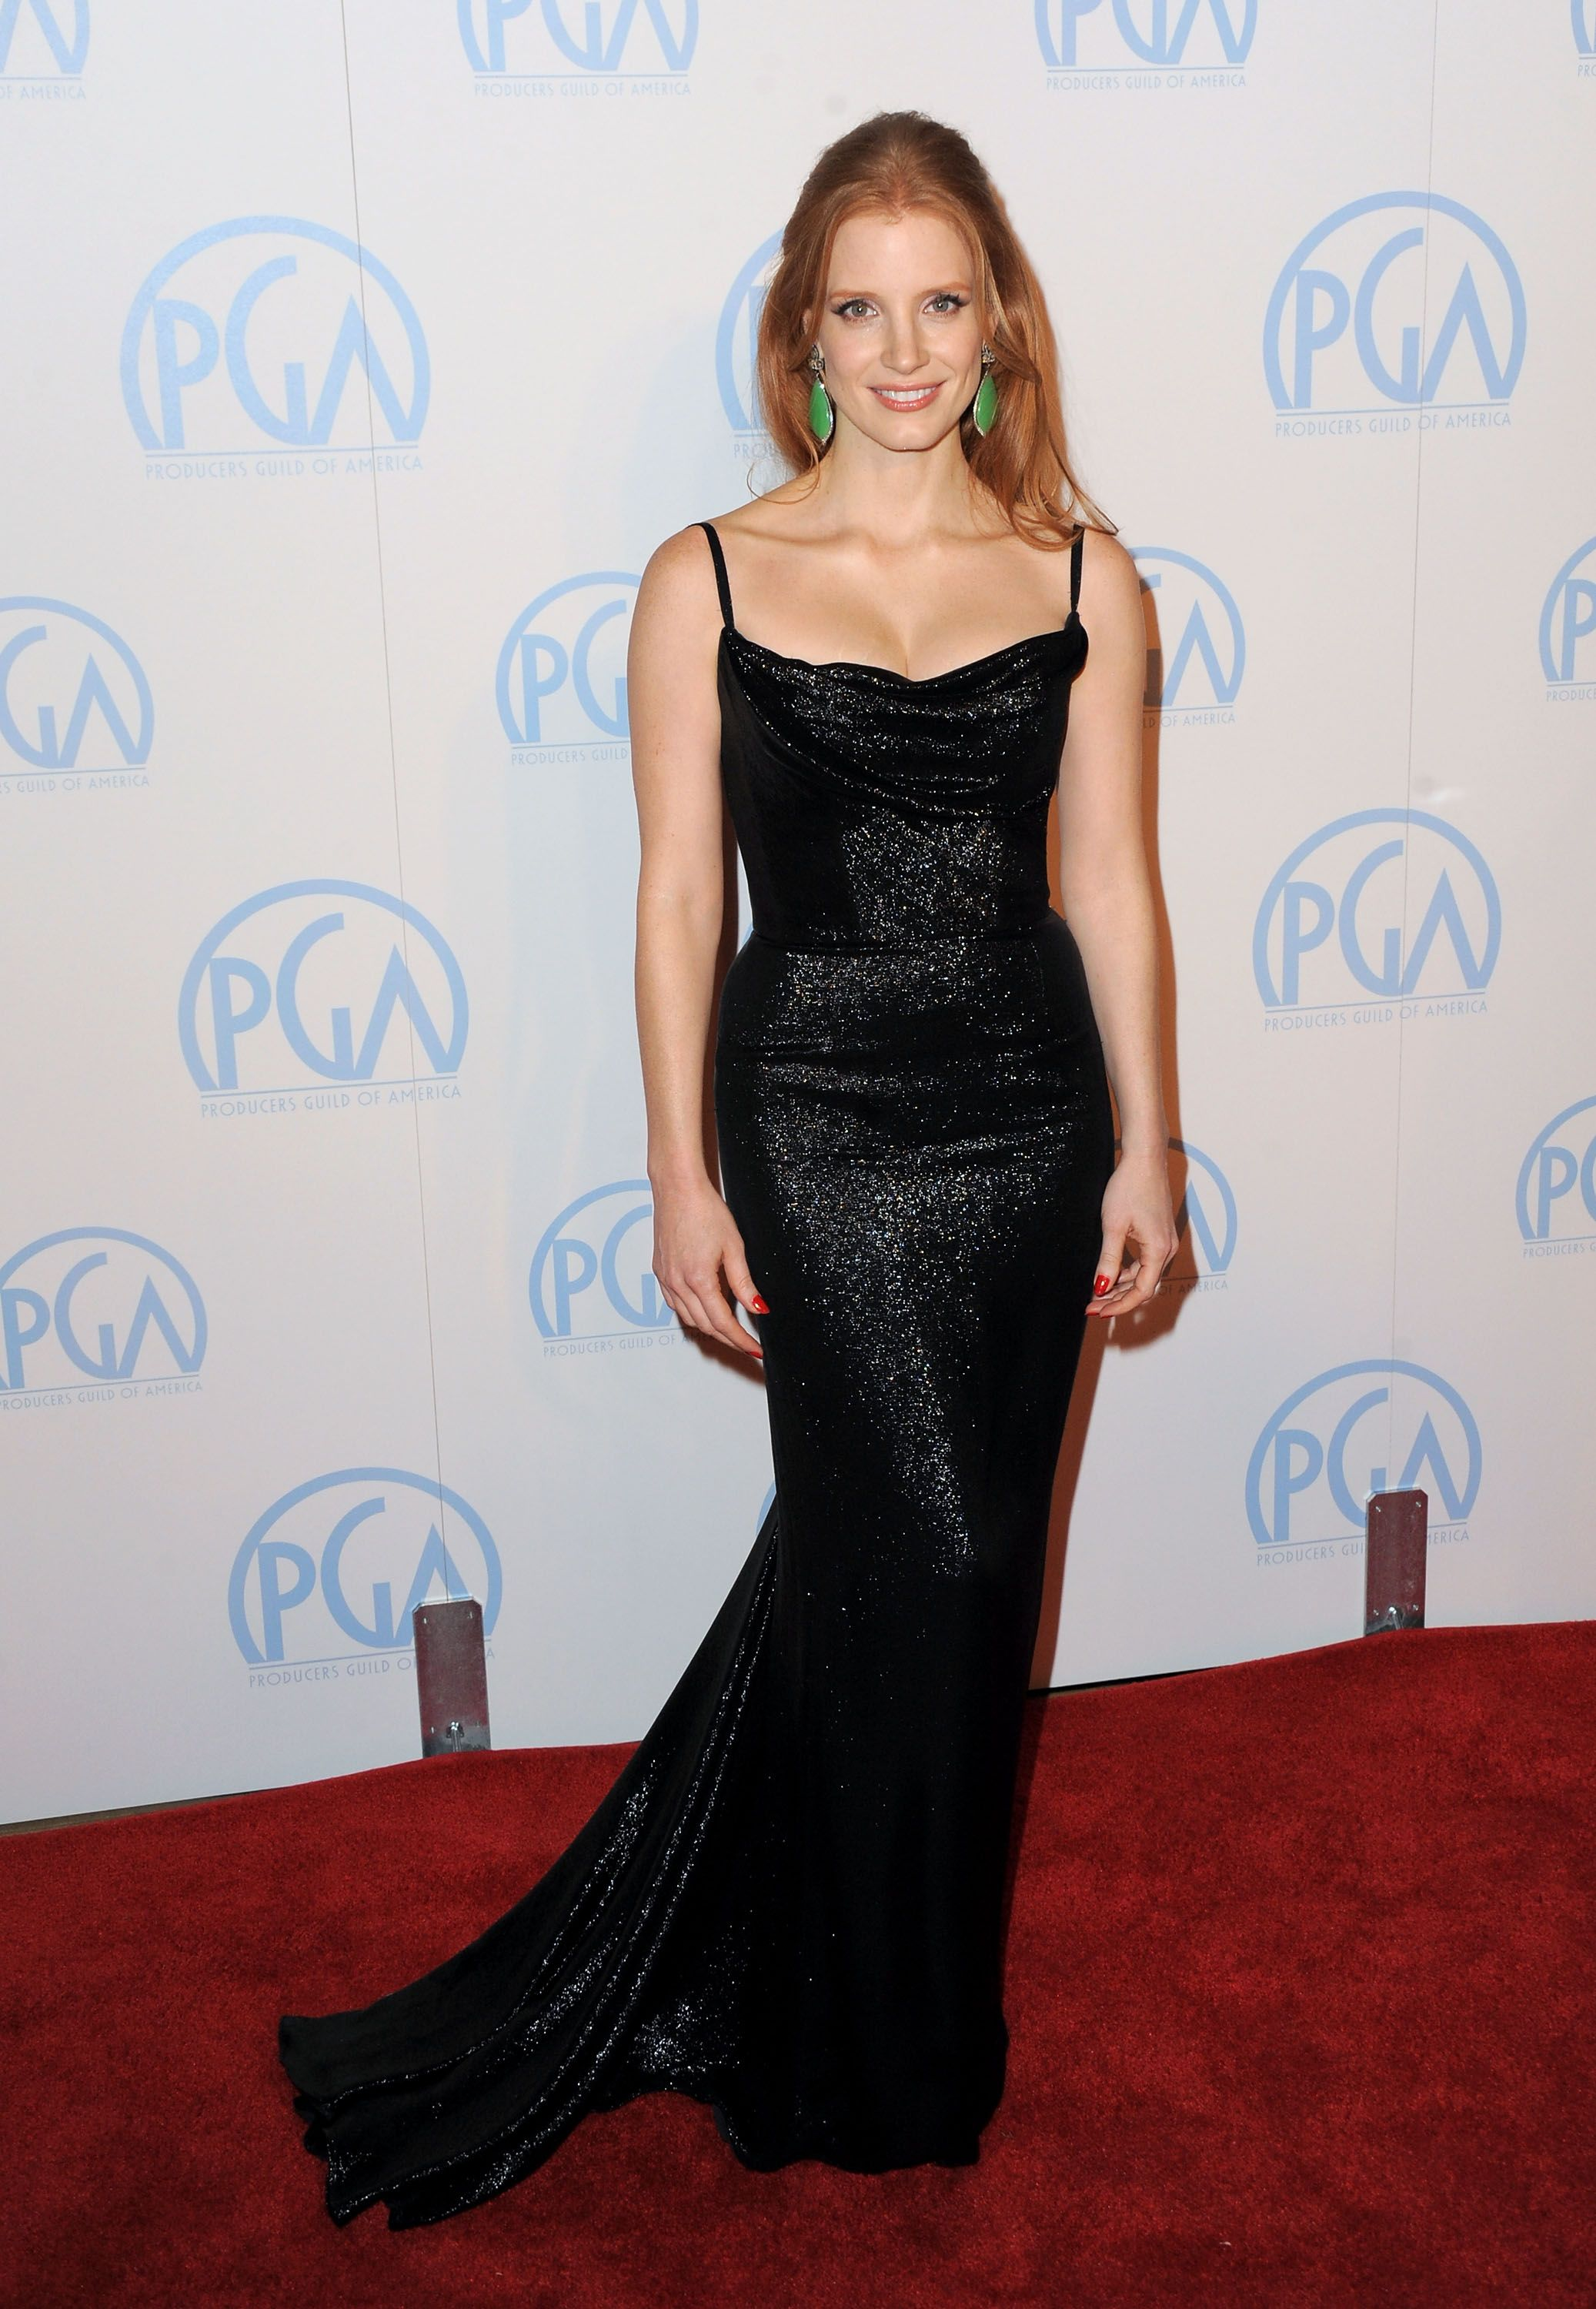 jessica chastain black dress green earrings - Google Search | Black ...